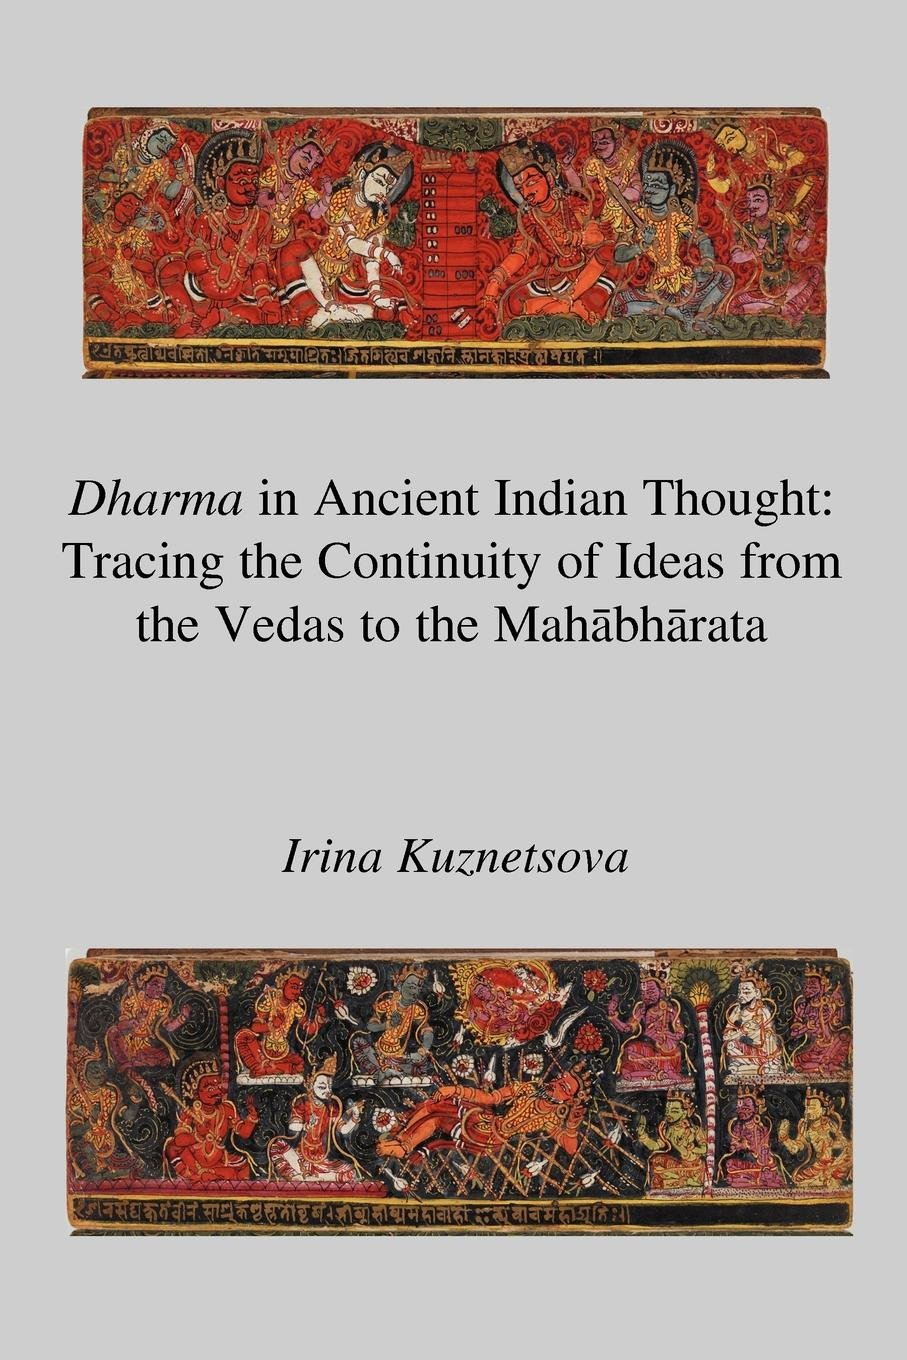 Dharma in Ancient Indian Thought: Tracing the Continuity of Ideas from the Vedas to the Mahbhrata